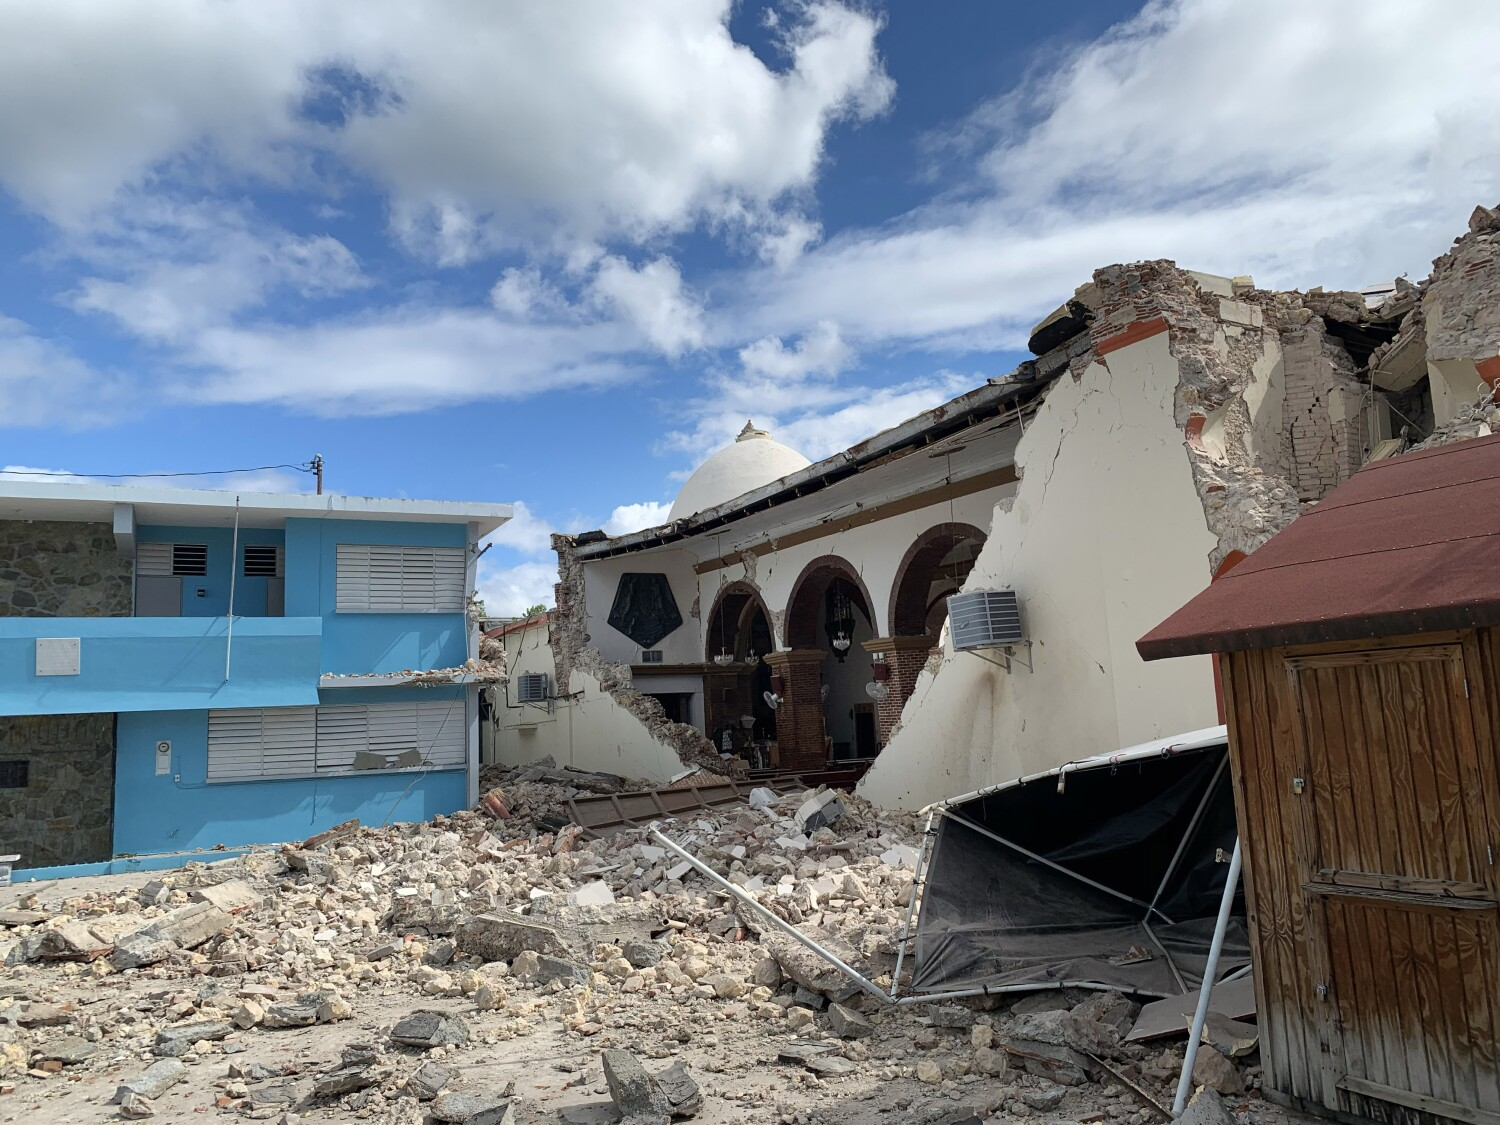 California sends disaster specialists to help Puerto Rico recover from earthquakes